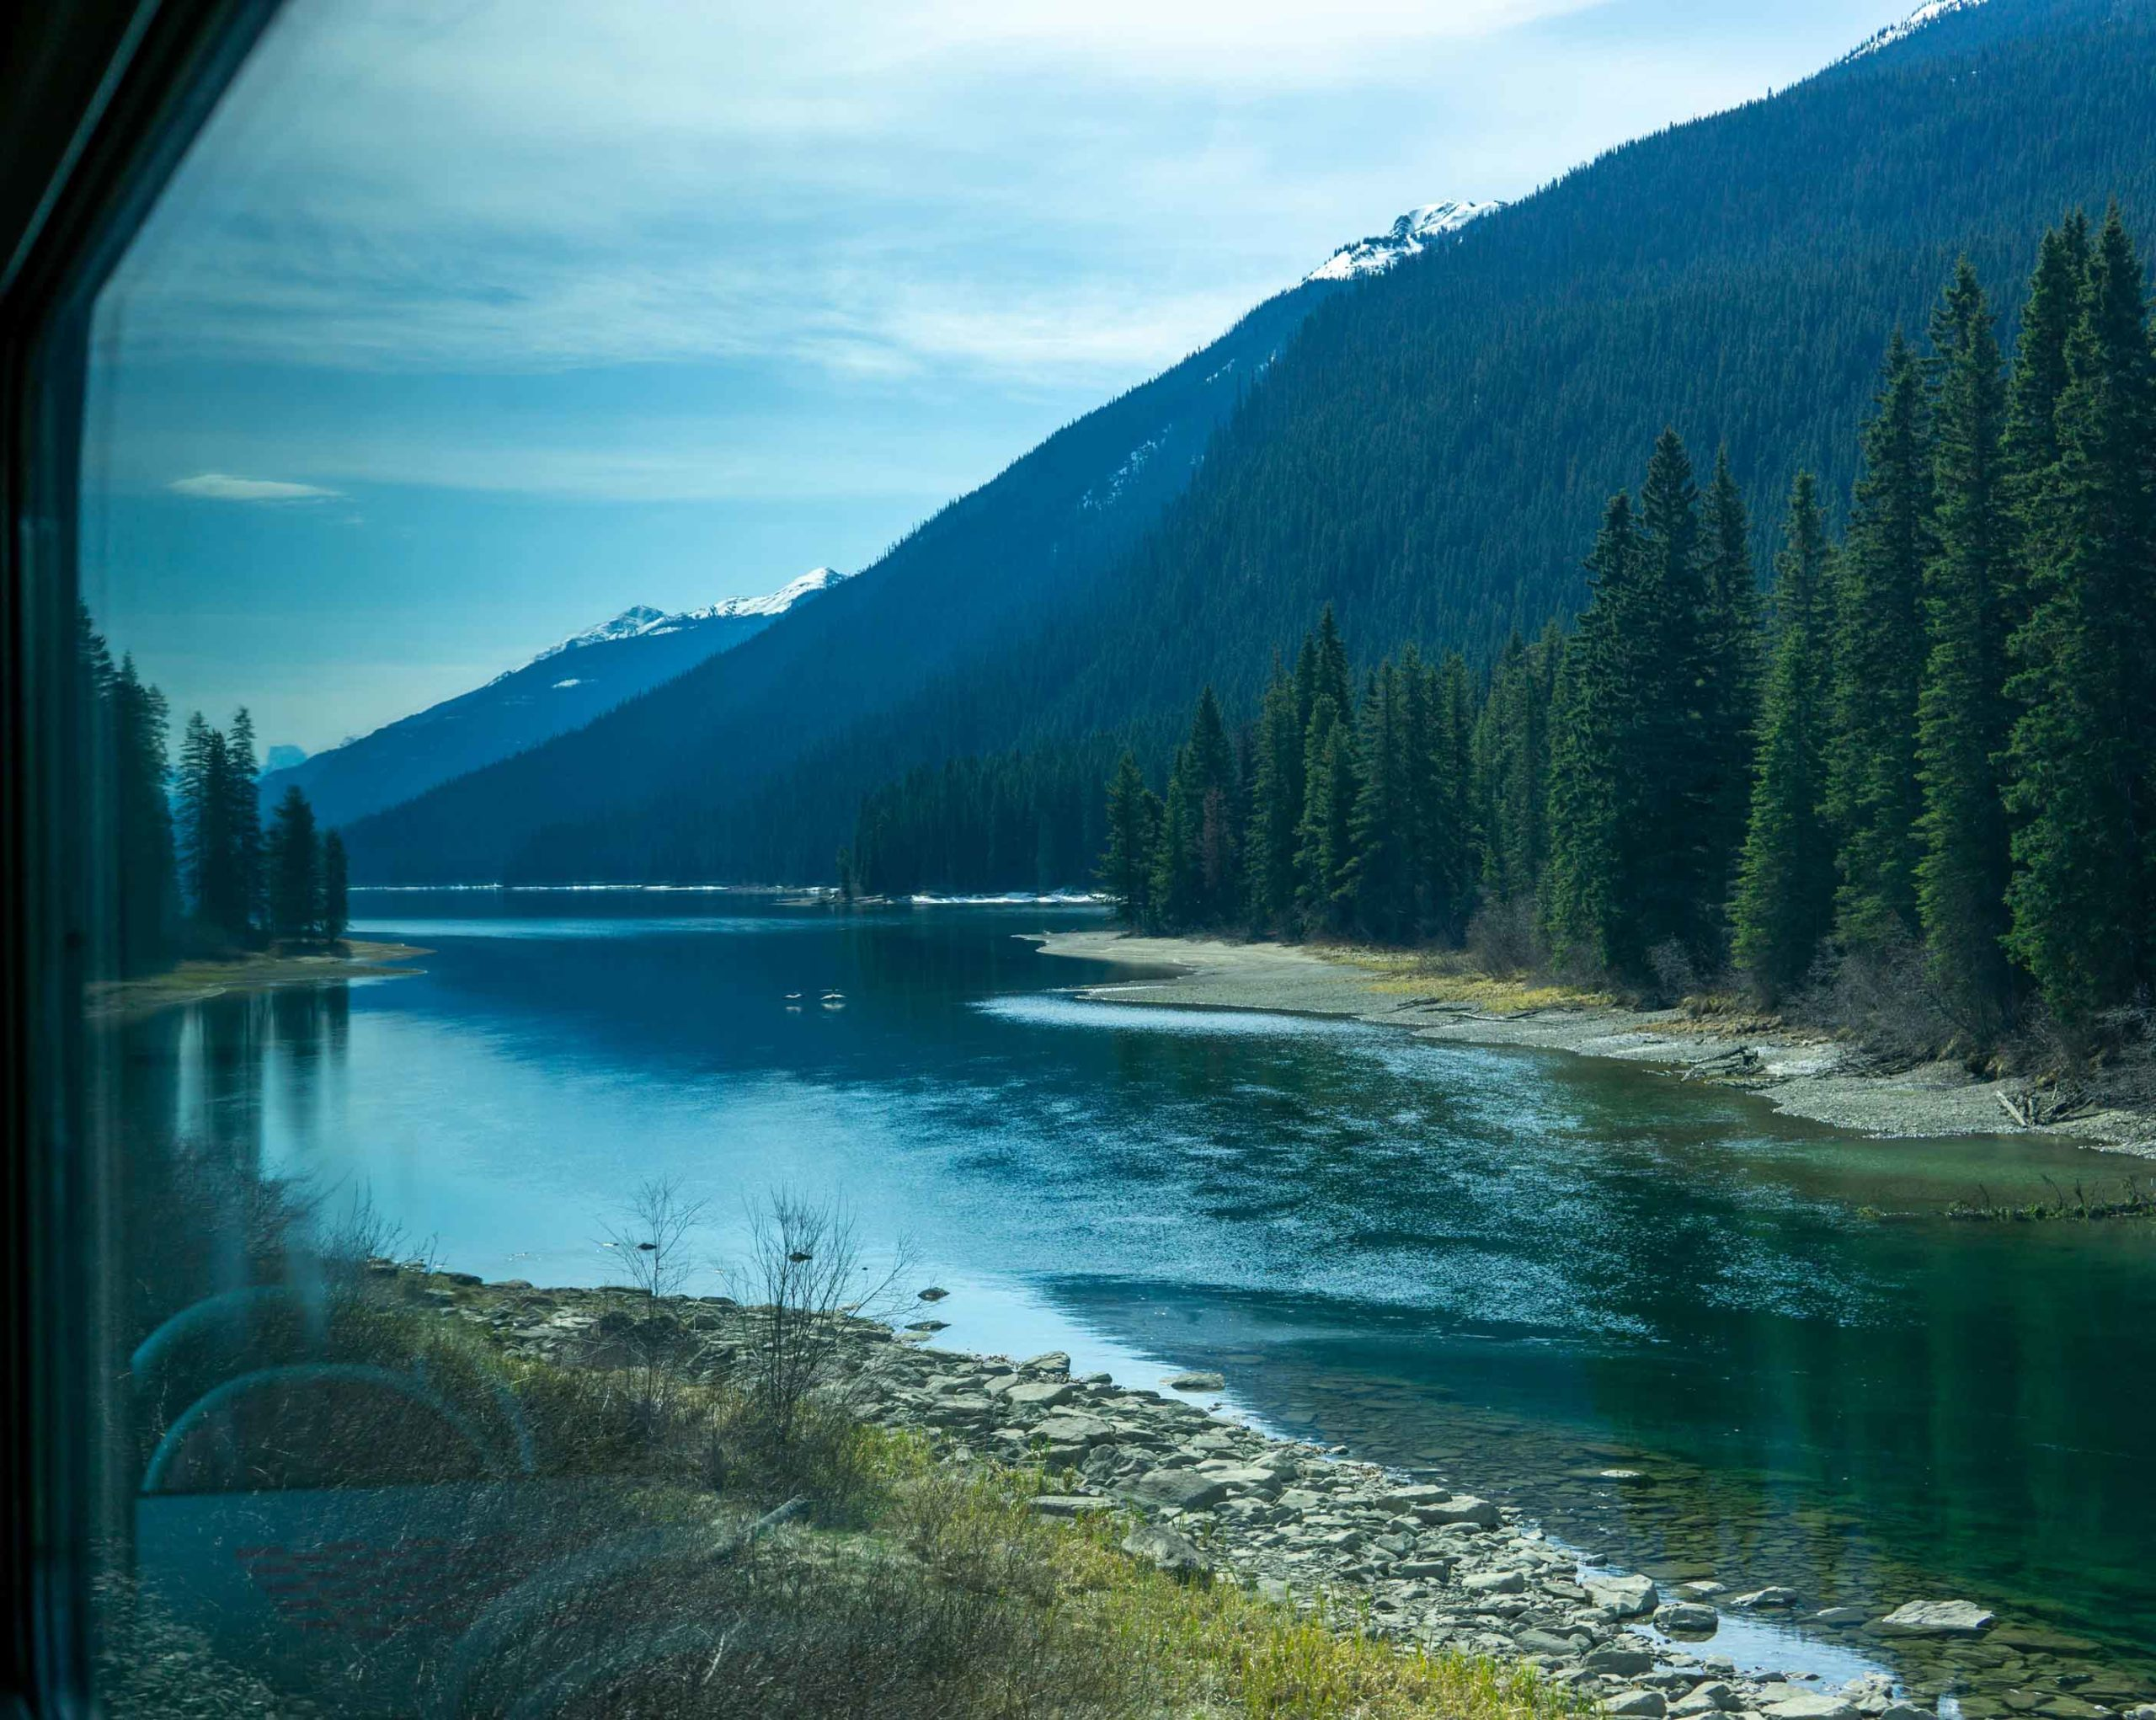 Looking through the window of the train at the Rockies aboard The Canadian